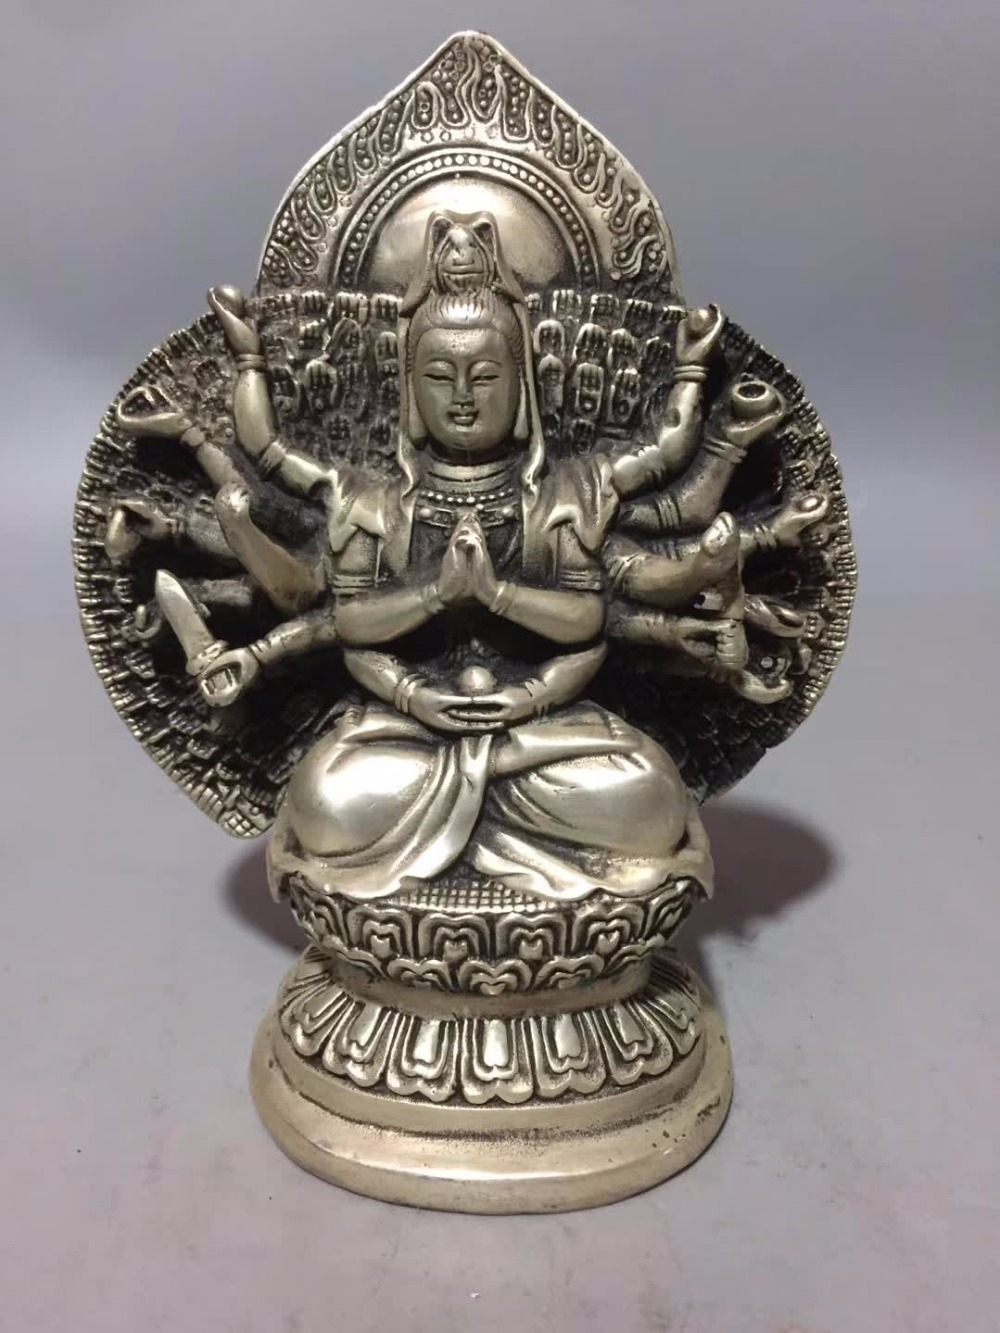 Art Collection Tibet Silver handmade Avalokitesvara Bodhisattva statue,Home/office desk decoration Guan yin sculpture 002Art Collection Tibet Silver handmade Avalokitesvara Bodhisattva statue,Home/office desk decoration Guan yin sculpture 002